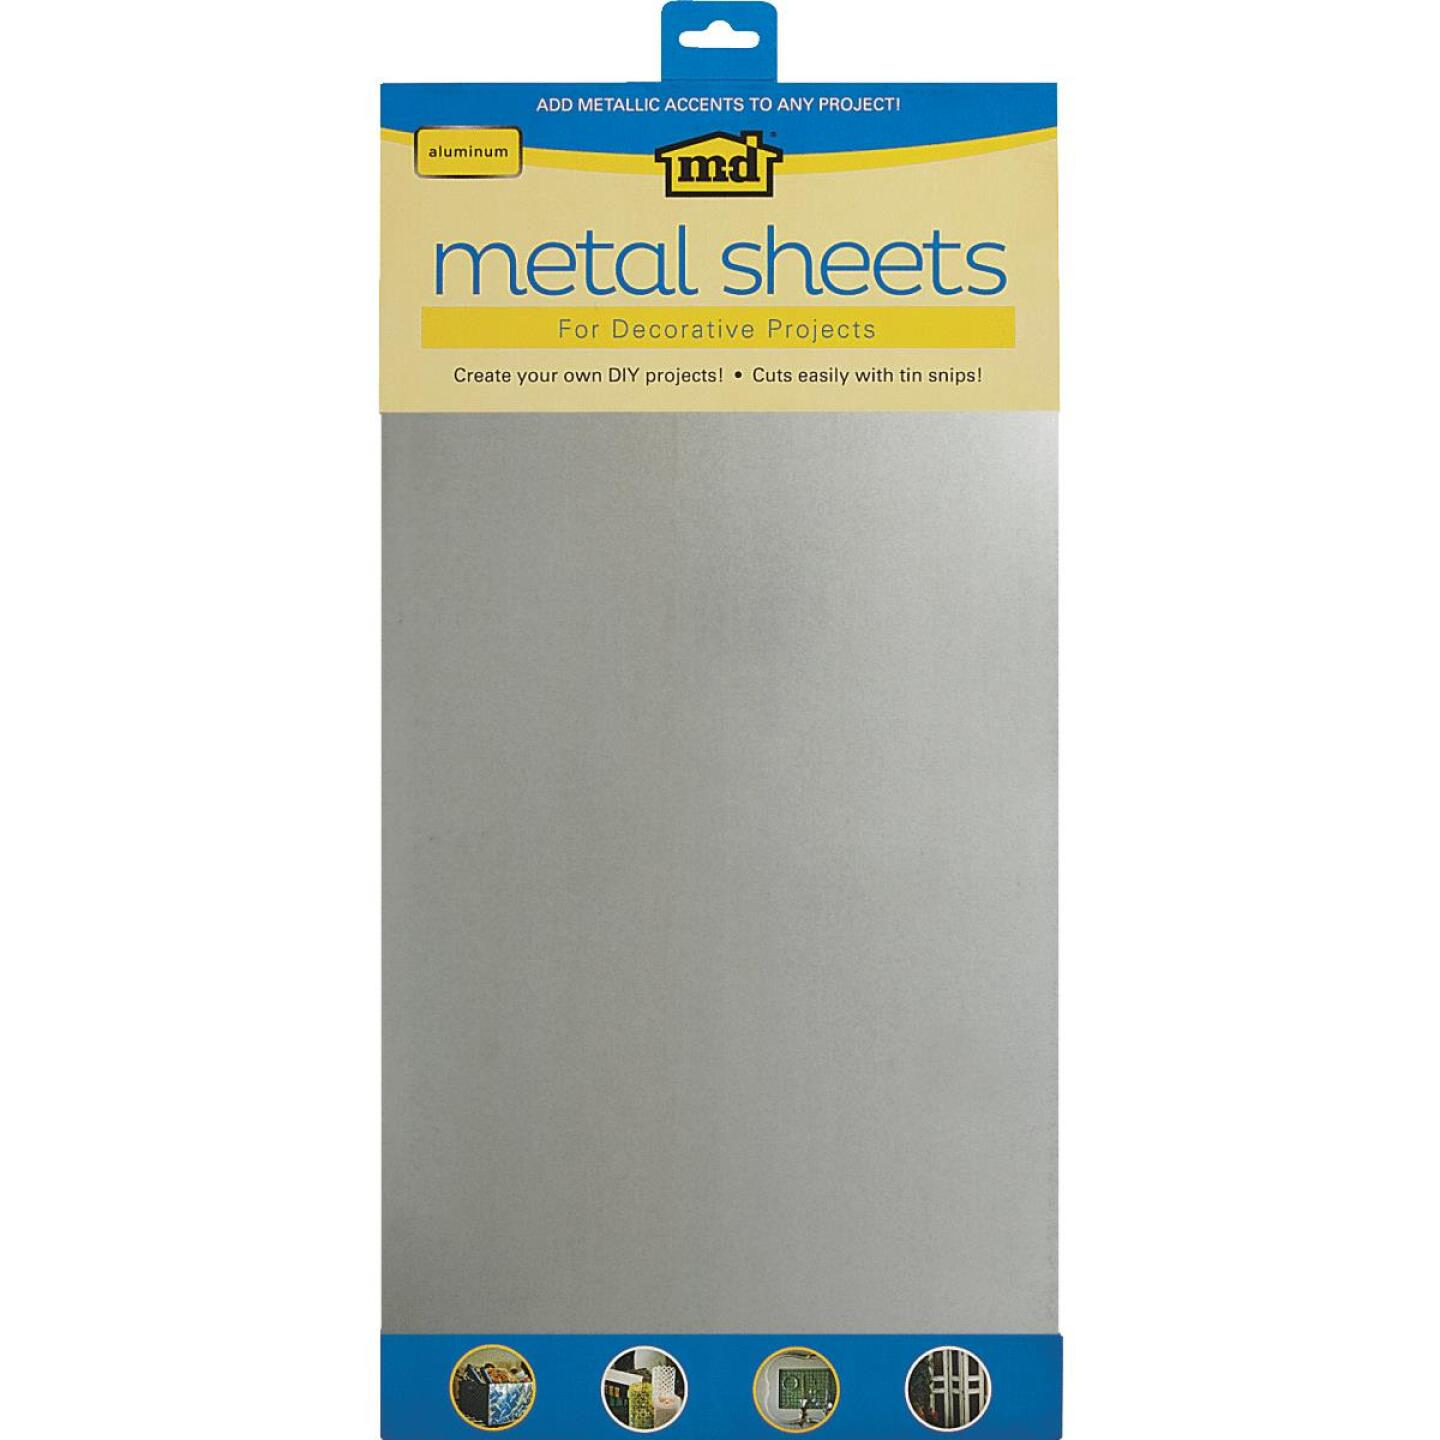 M-D 1 Ft. x 2 Ft. x .020 In. Galvanized Steel Sheet Stock Image 1